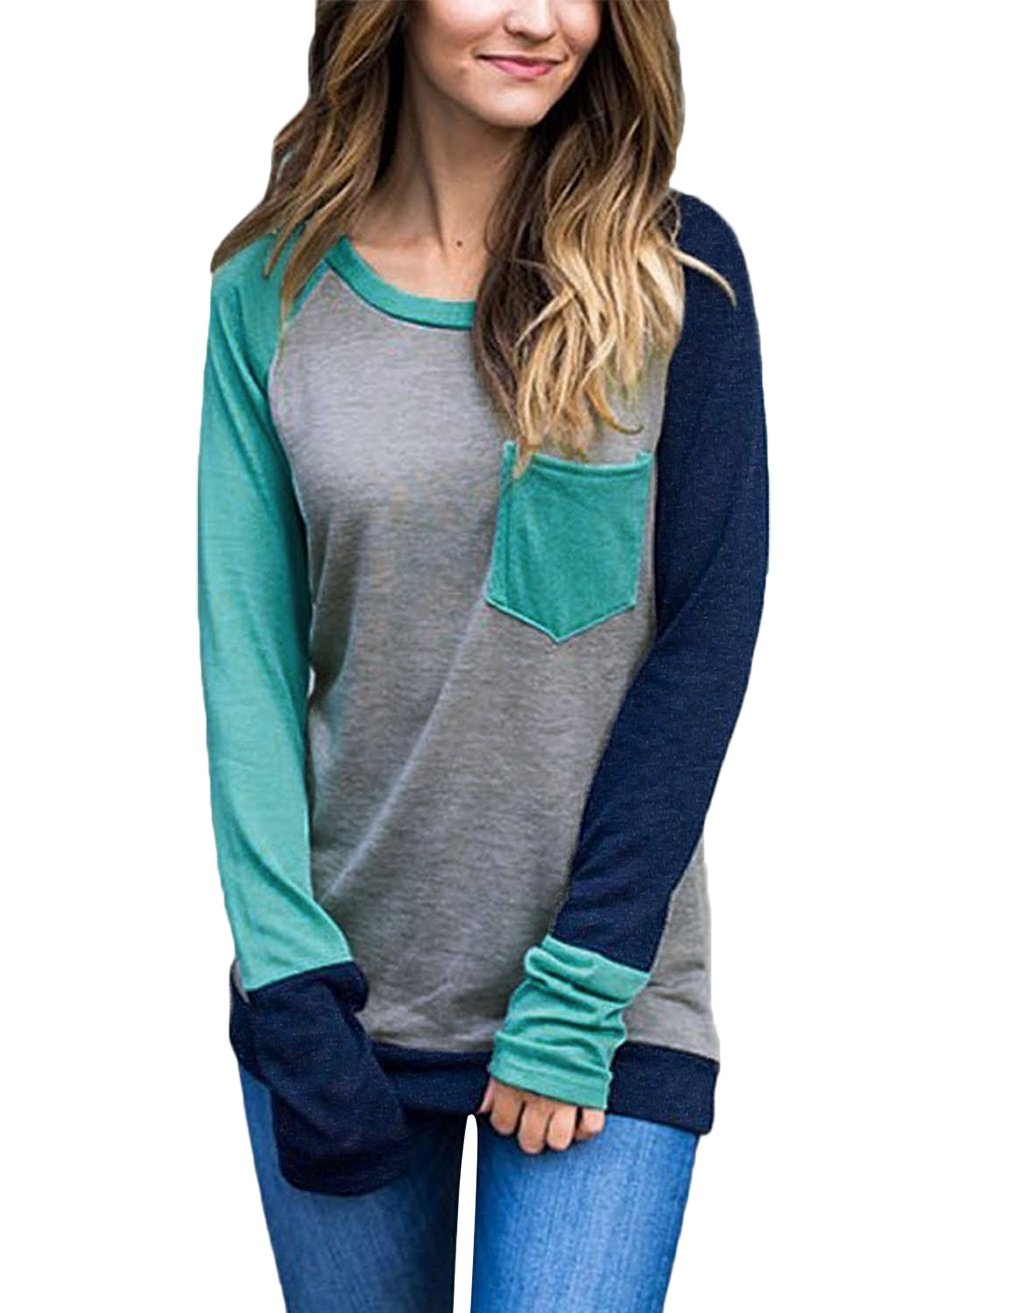 EMVANV Contrast Raglan Sleeve T-Shirt, Female Trendy Casual Fall Clothes for Women